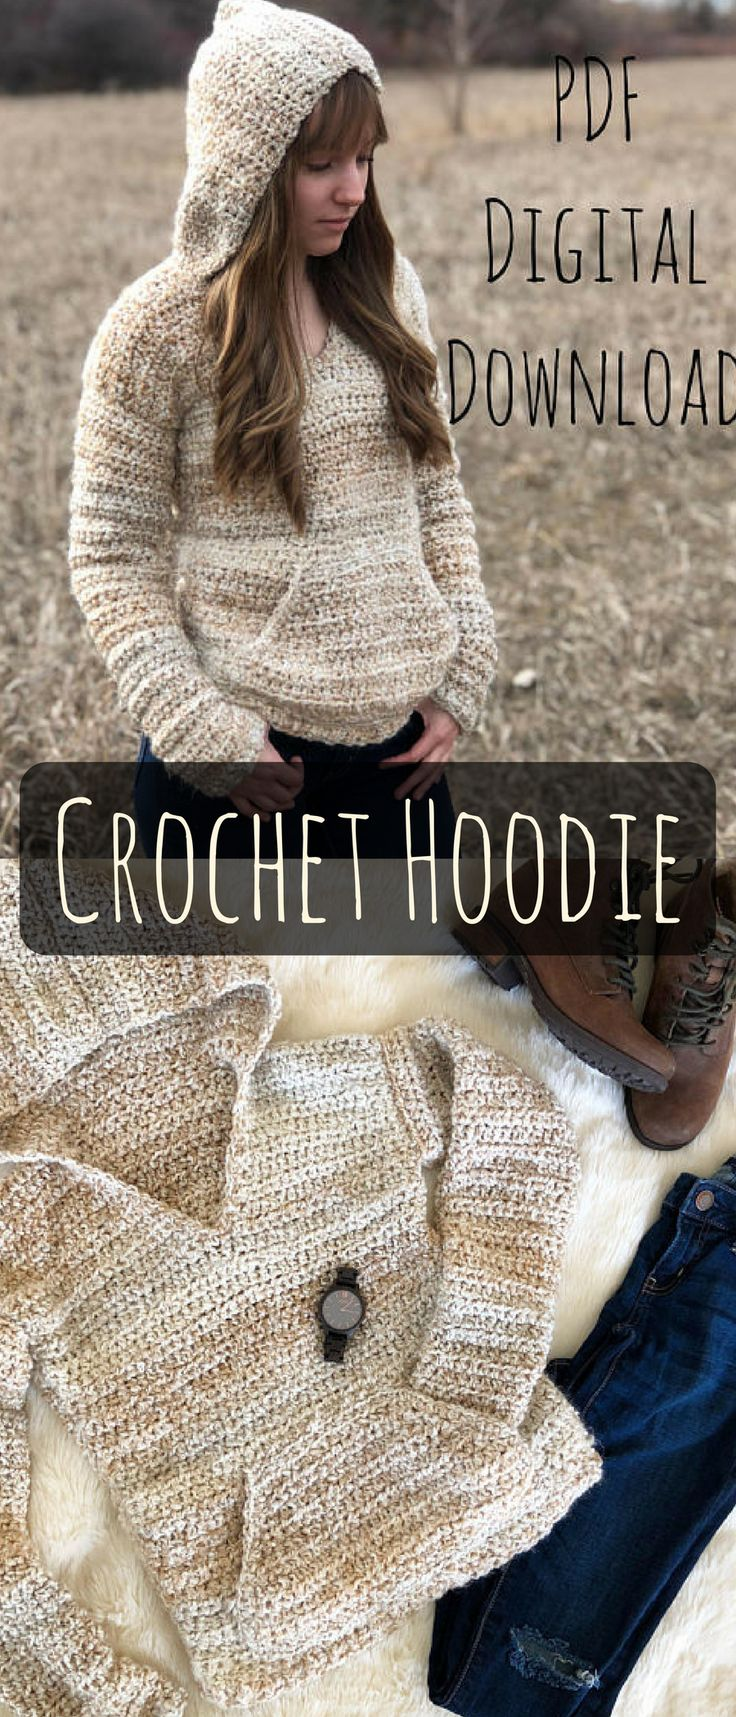 The butterbeer pullover. This crochet hoodie looks so cozy. #crochethoodie #ad #pattern #pullover